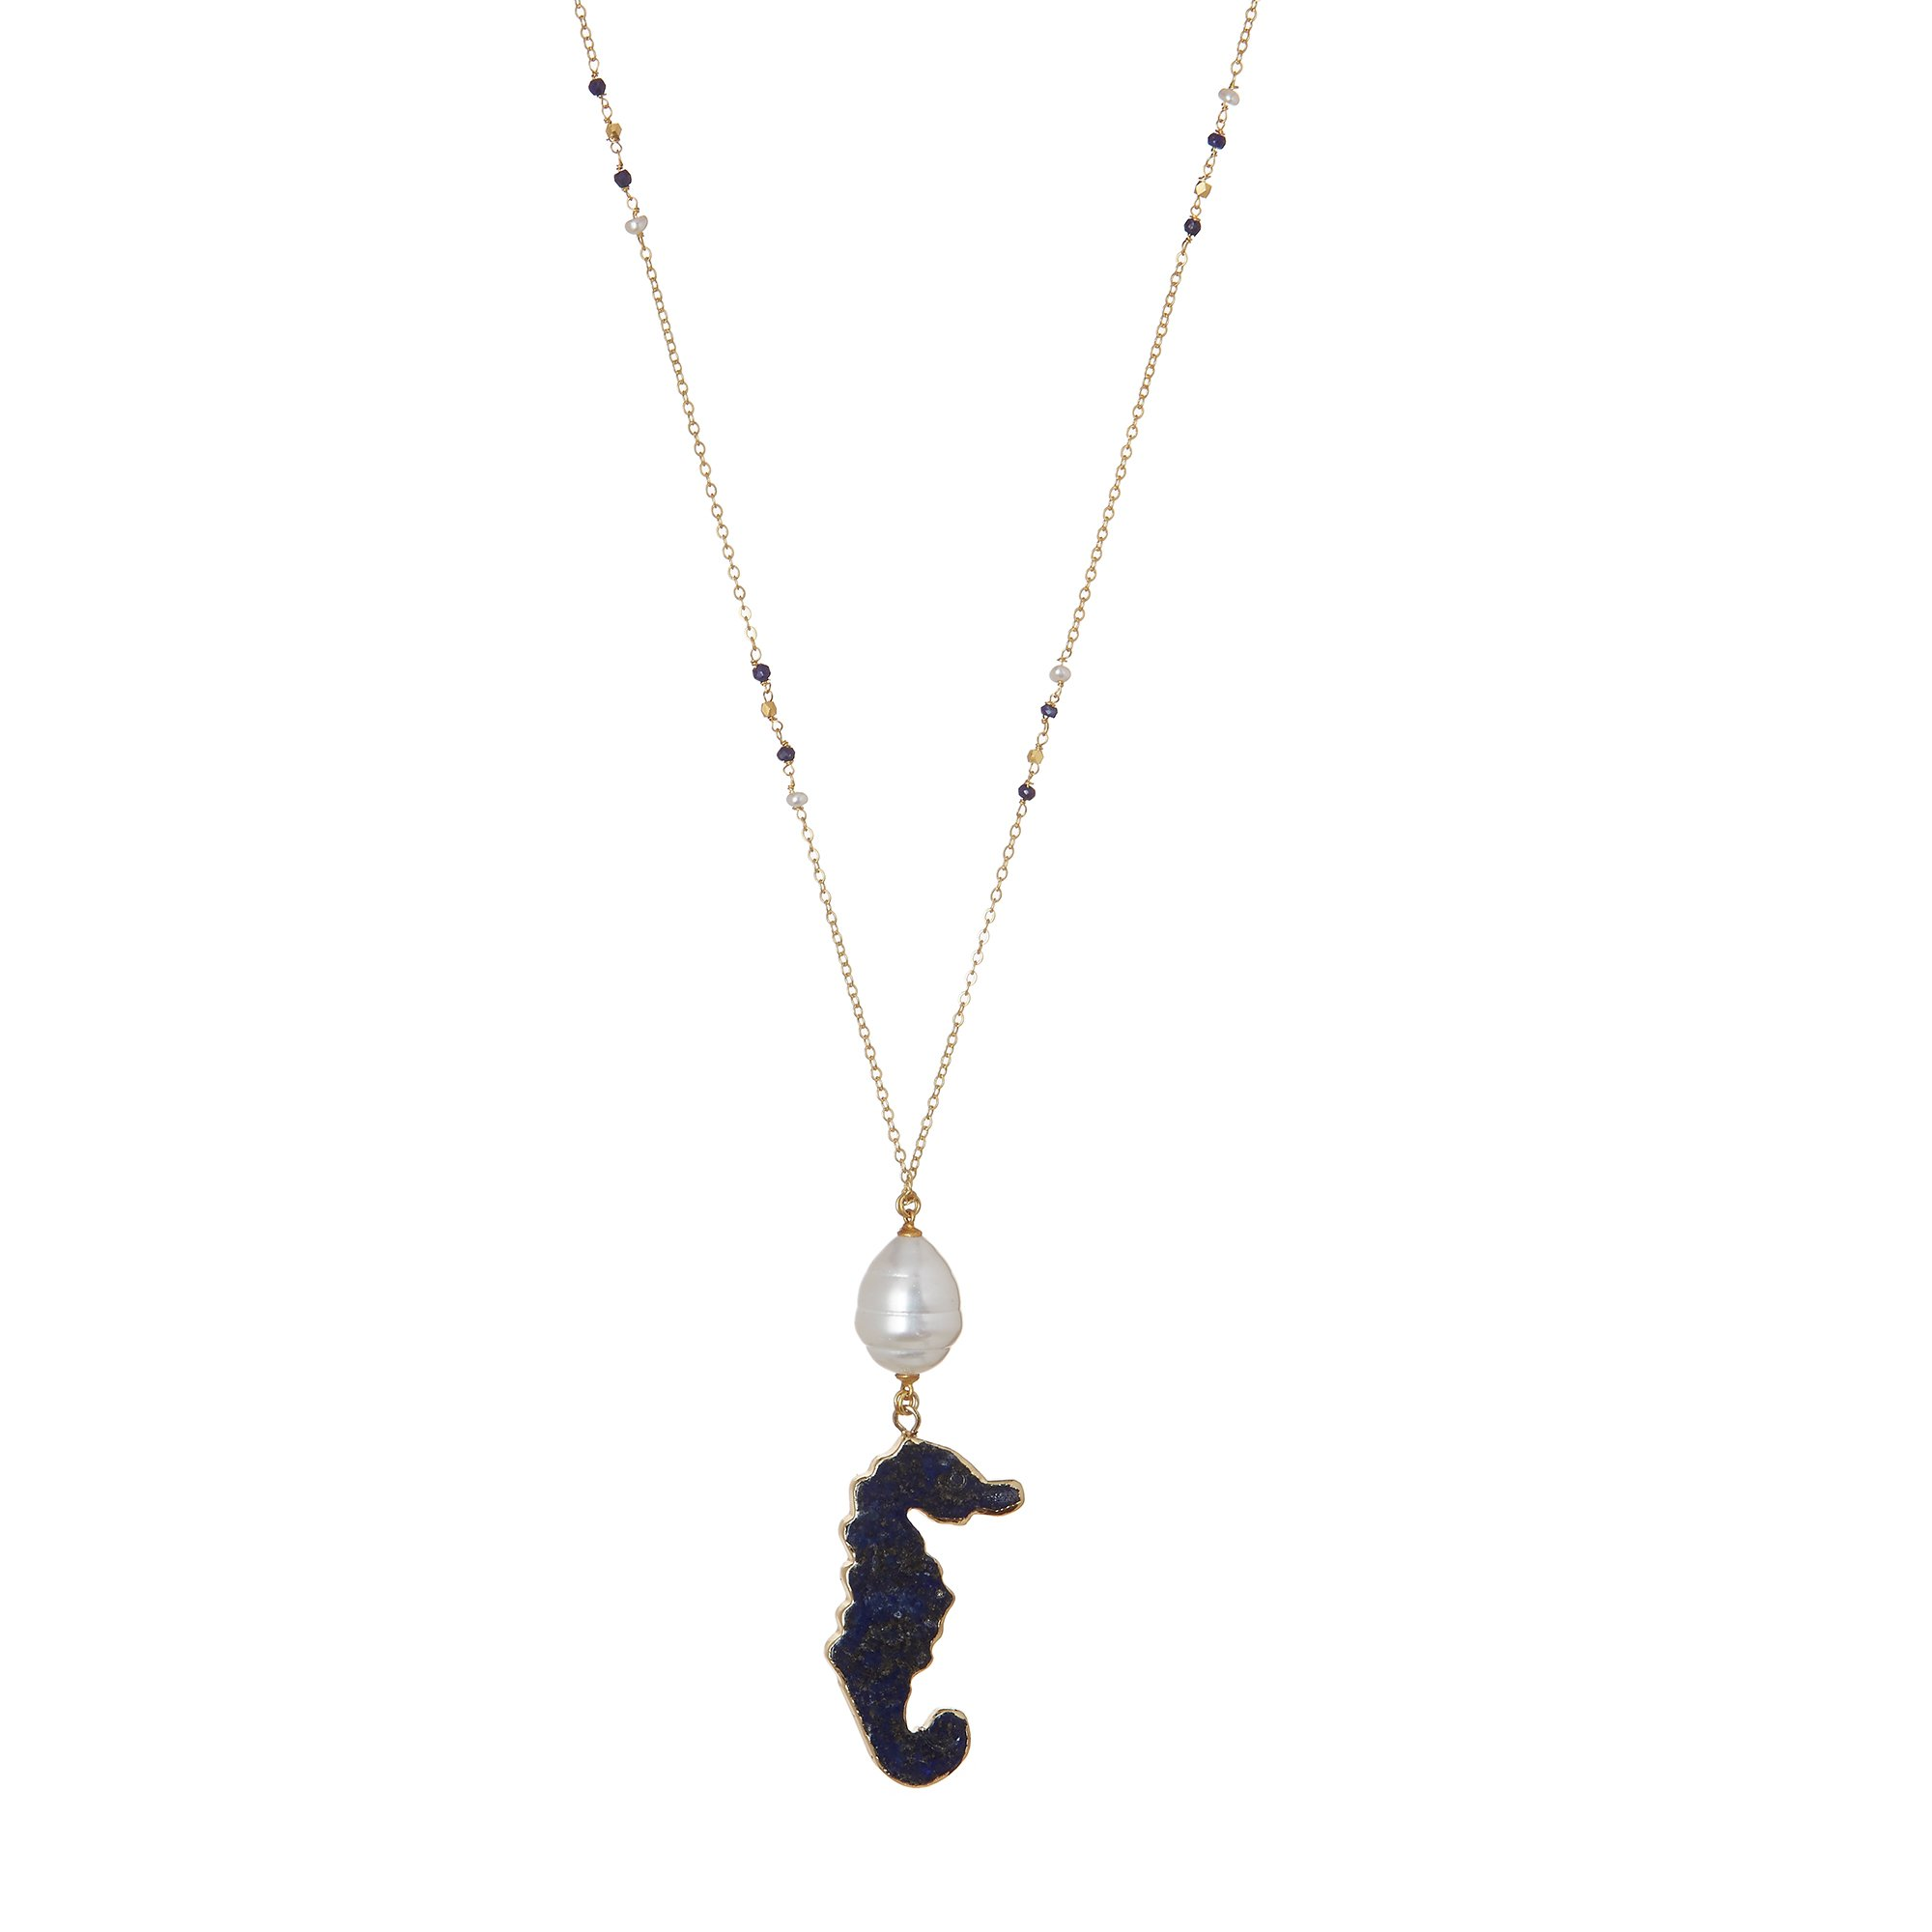 dsc products in gold necklace irammurra ny plated sea creature handmade seahorse